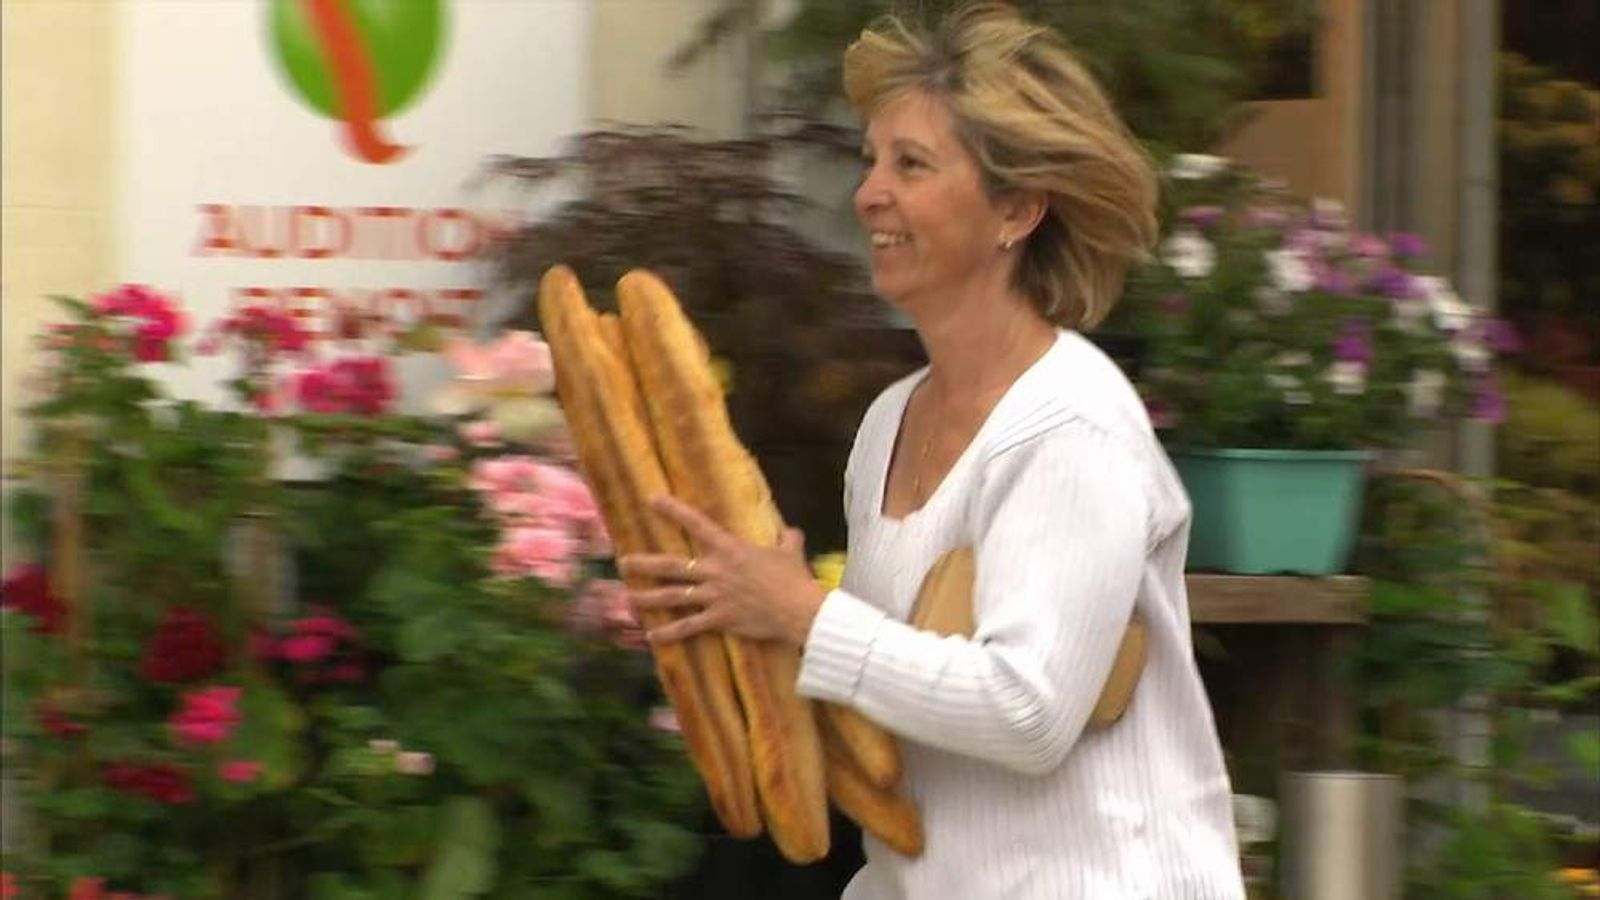 Euro elections: woman with loaves of bread in Viller-Cotteray